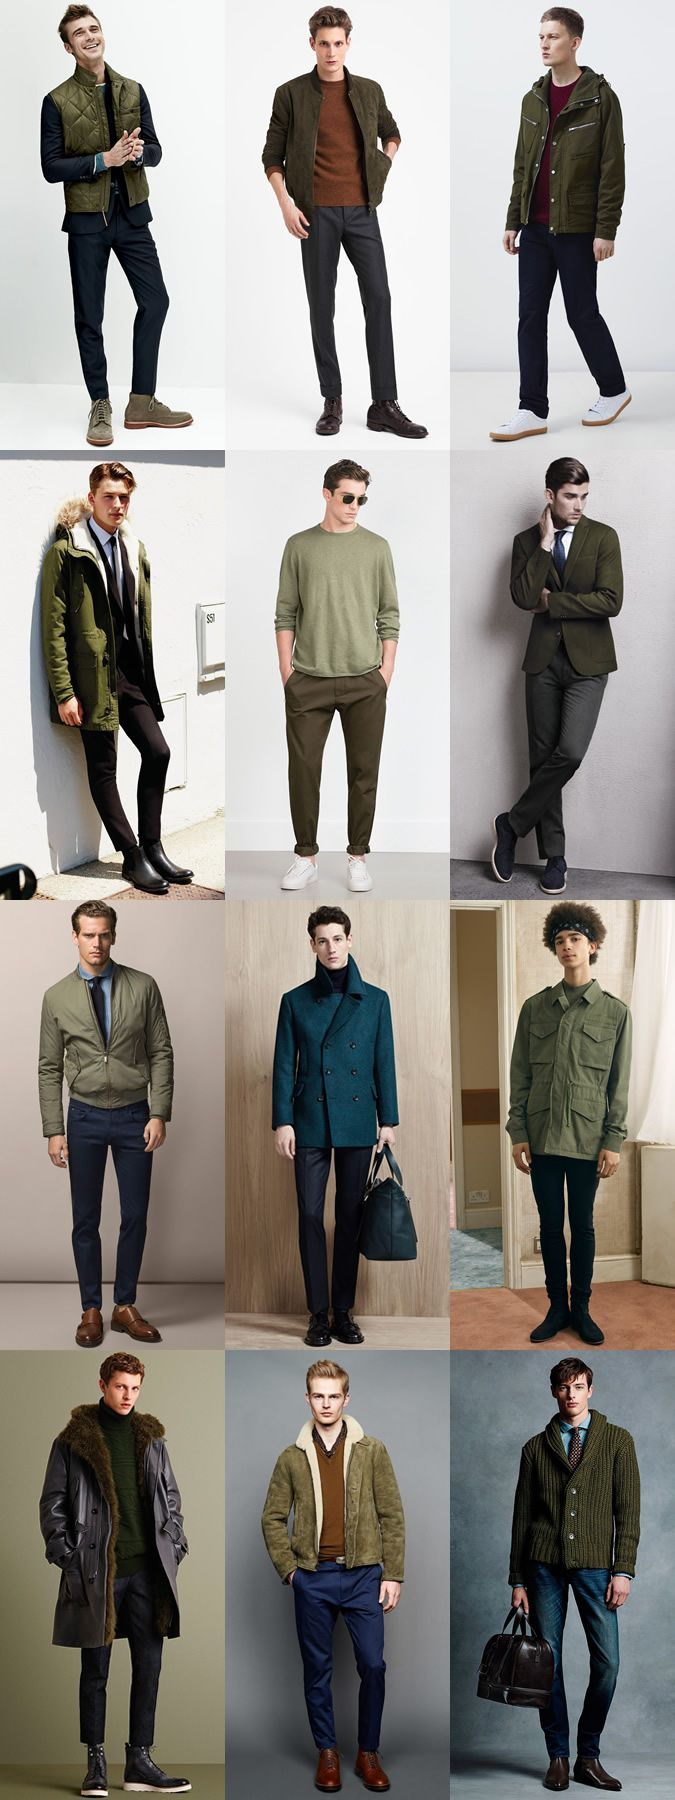 Men's 2015 Autumn/Winter Fashion Trend Preview: Subdued/Military Green Clothing …